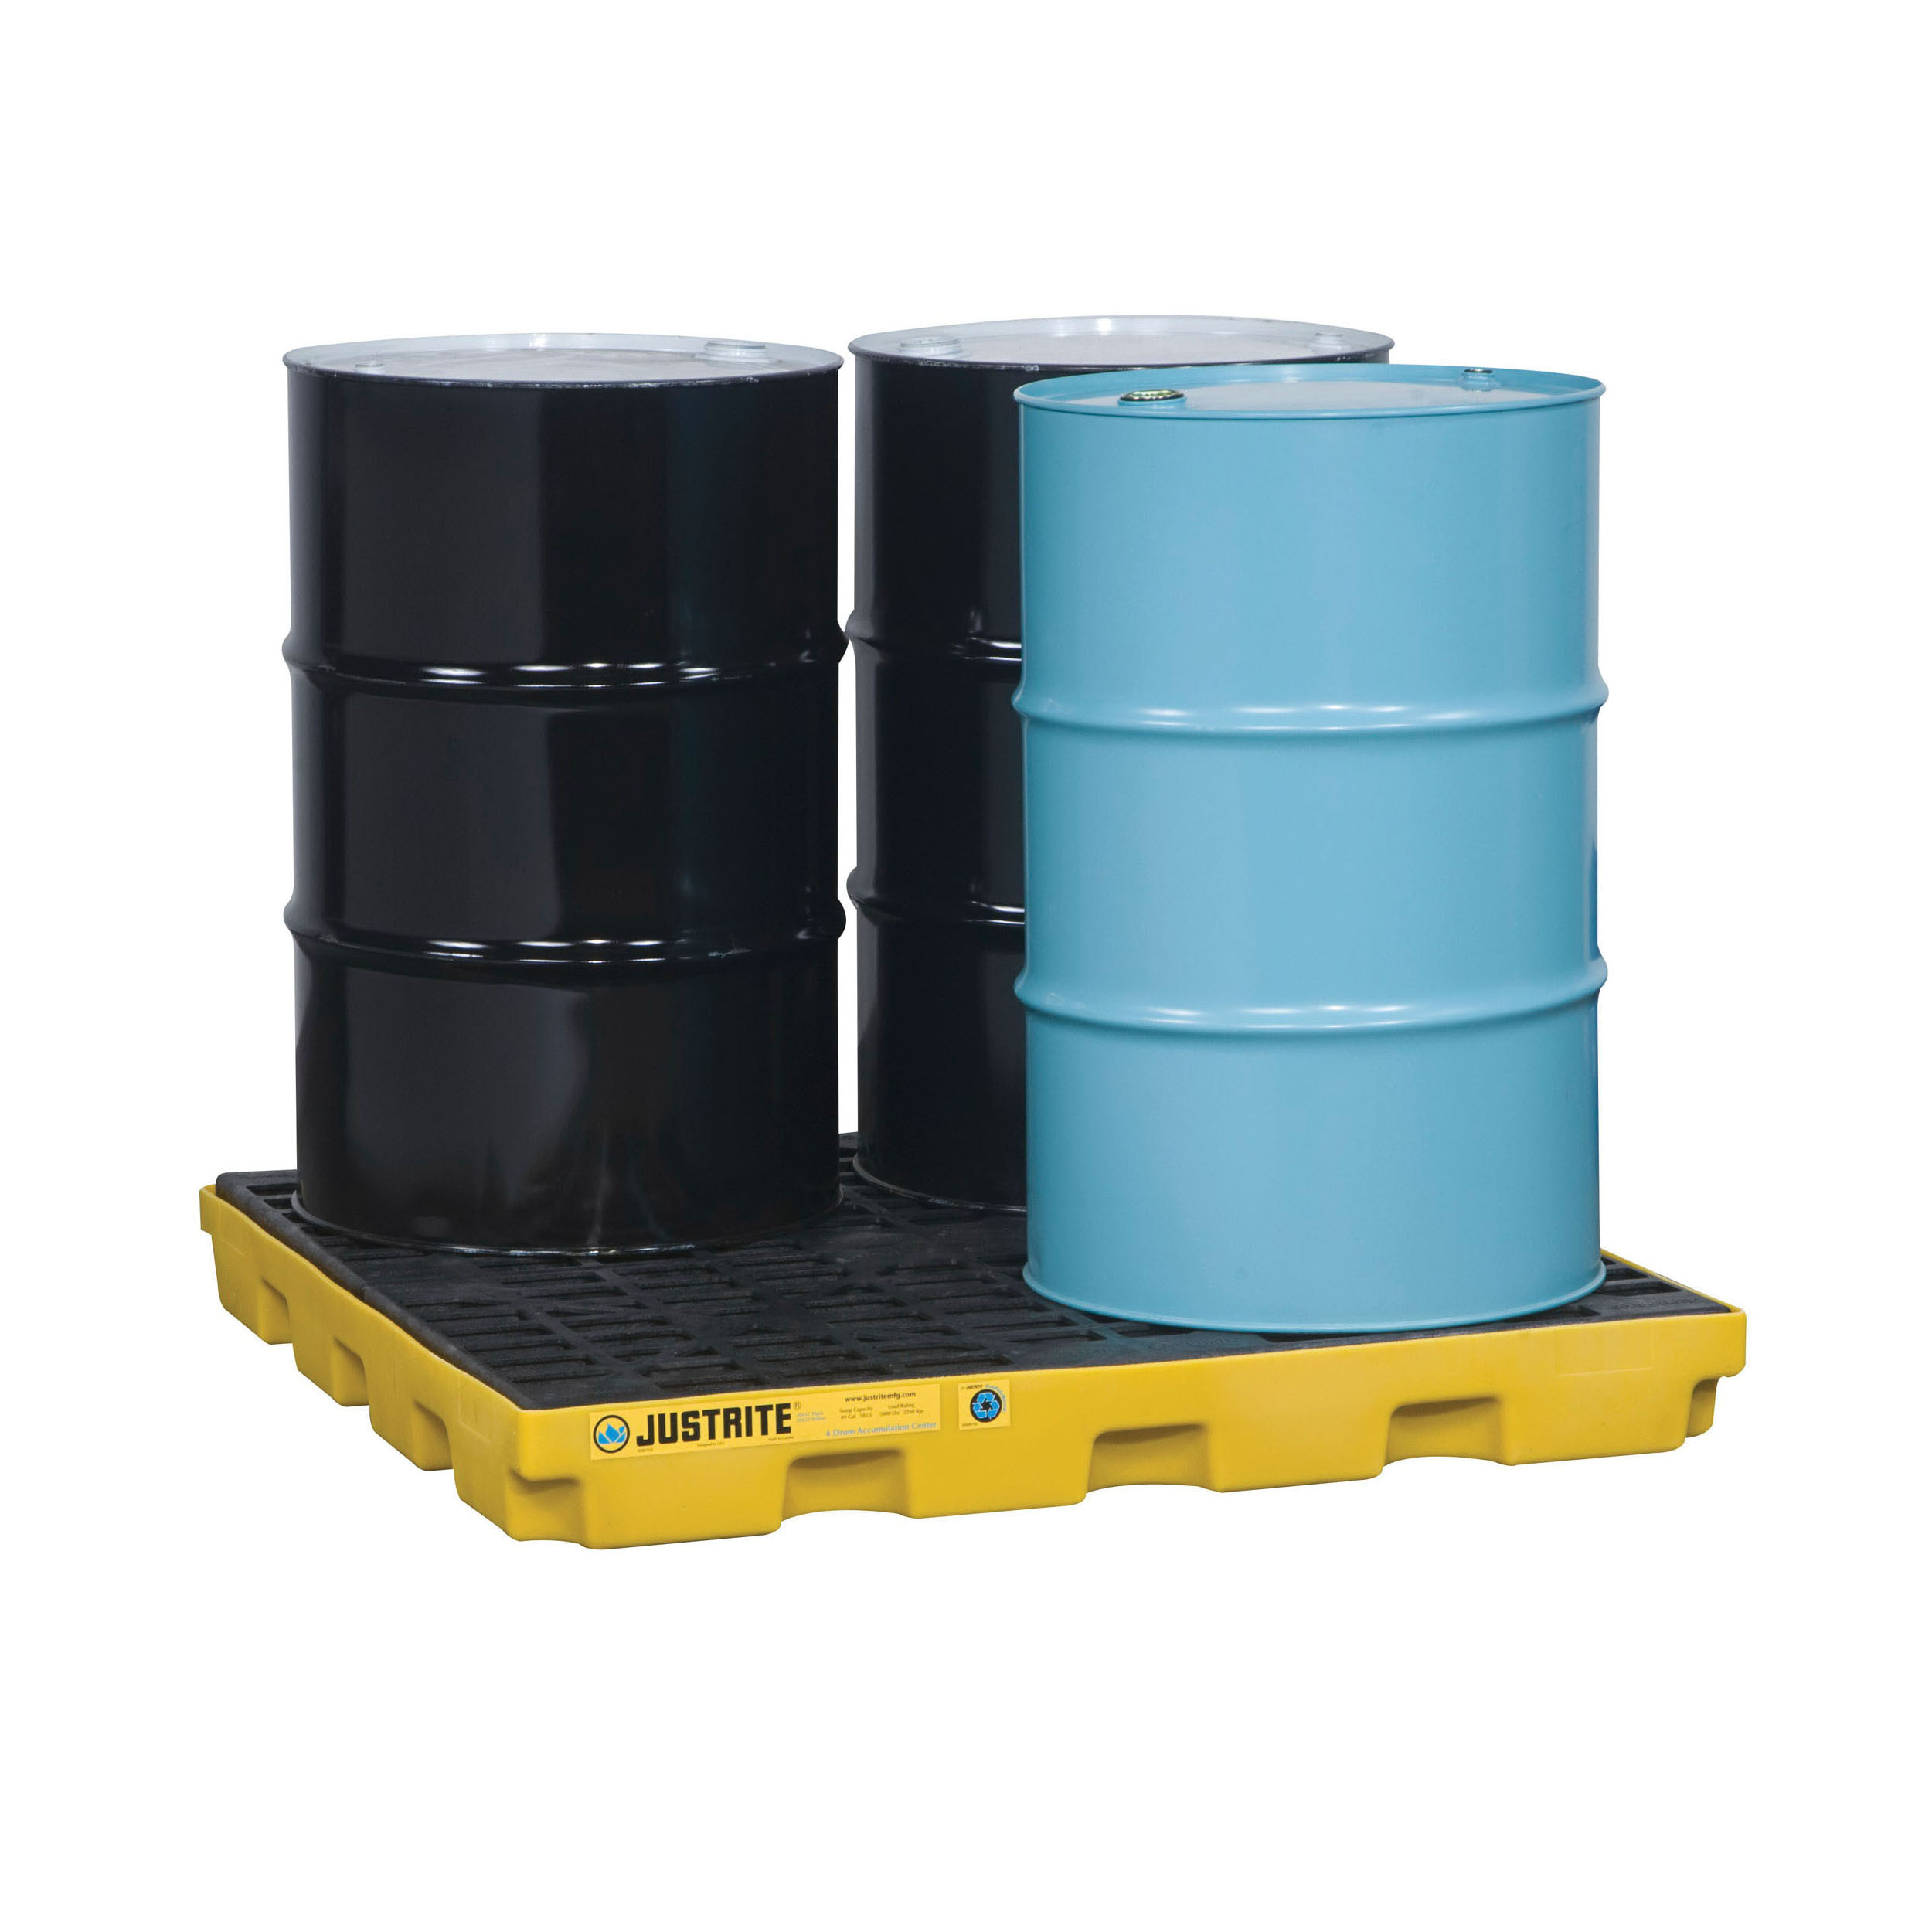 Justrite® 28656 EcoPolyBlend™ Accumulation Center, 4 Drums, 49 gal Spill, 5000 lb Load, 45% Recycled Polyethylene